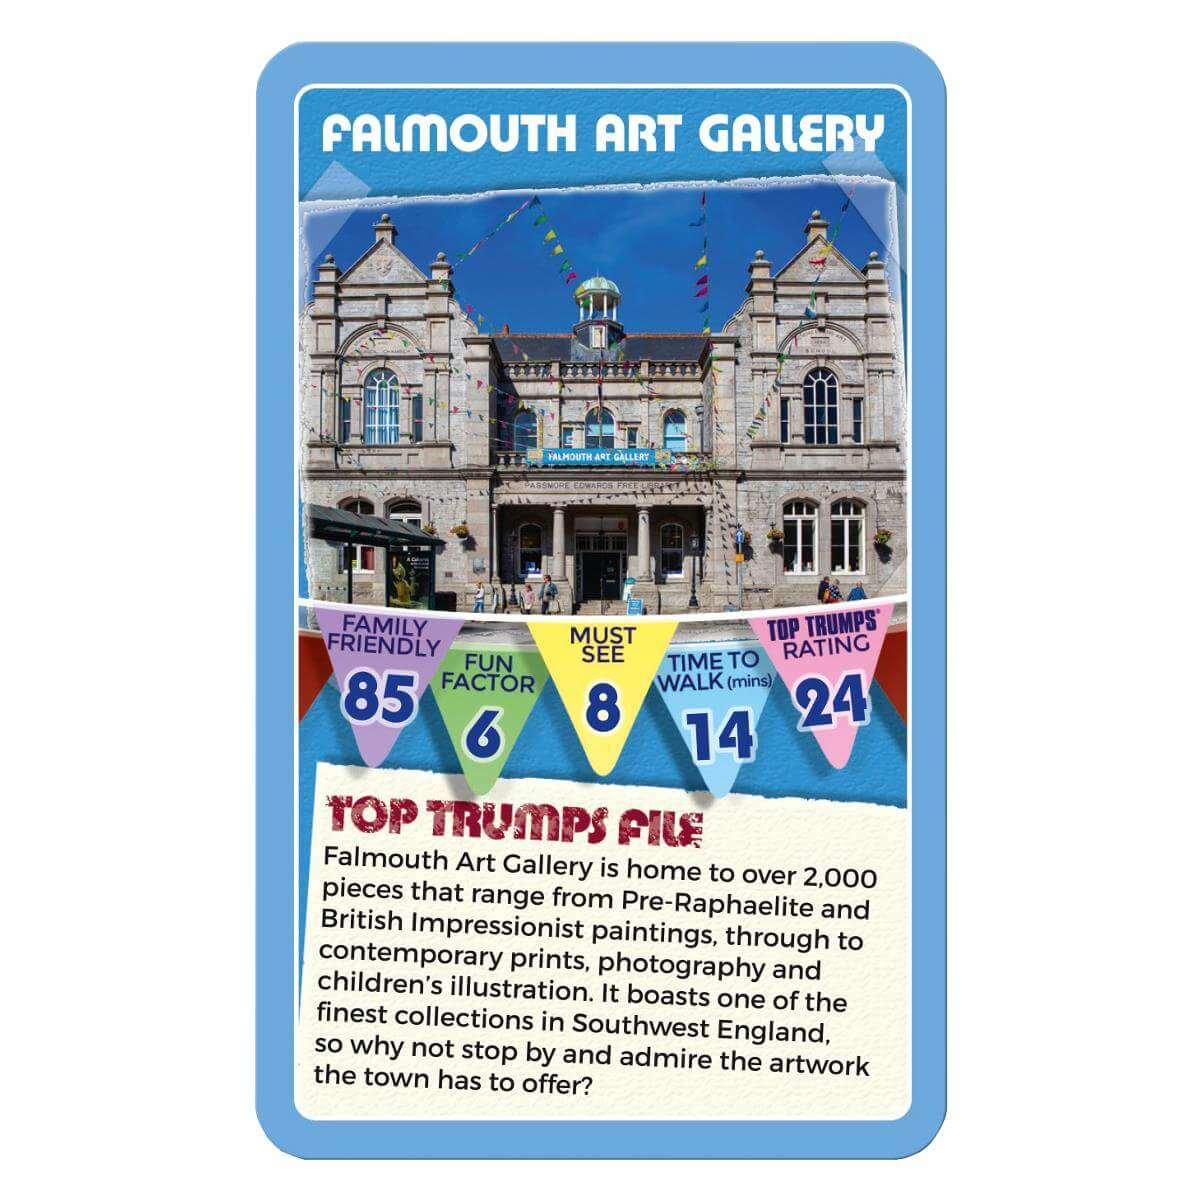 Top Trumps Rules >> Falmouth 30 Things To See Top Trumps Card Game Winning